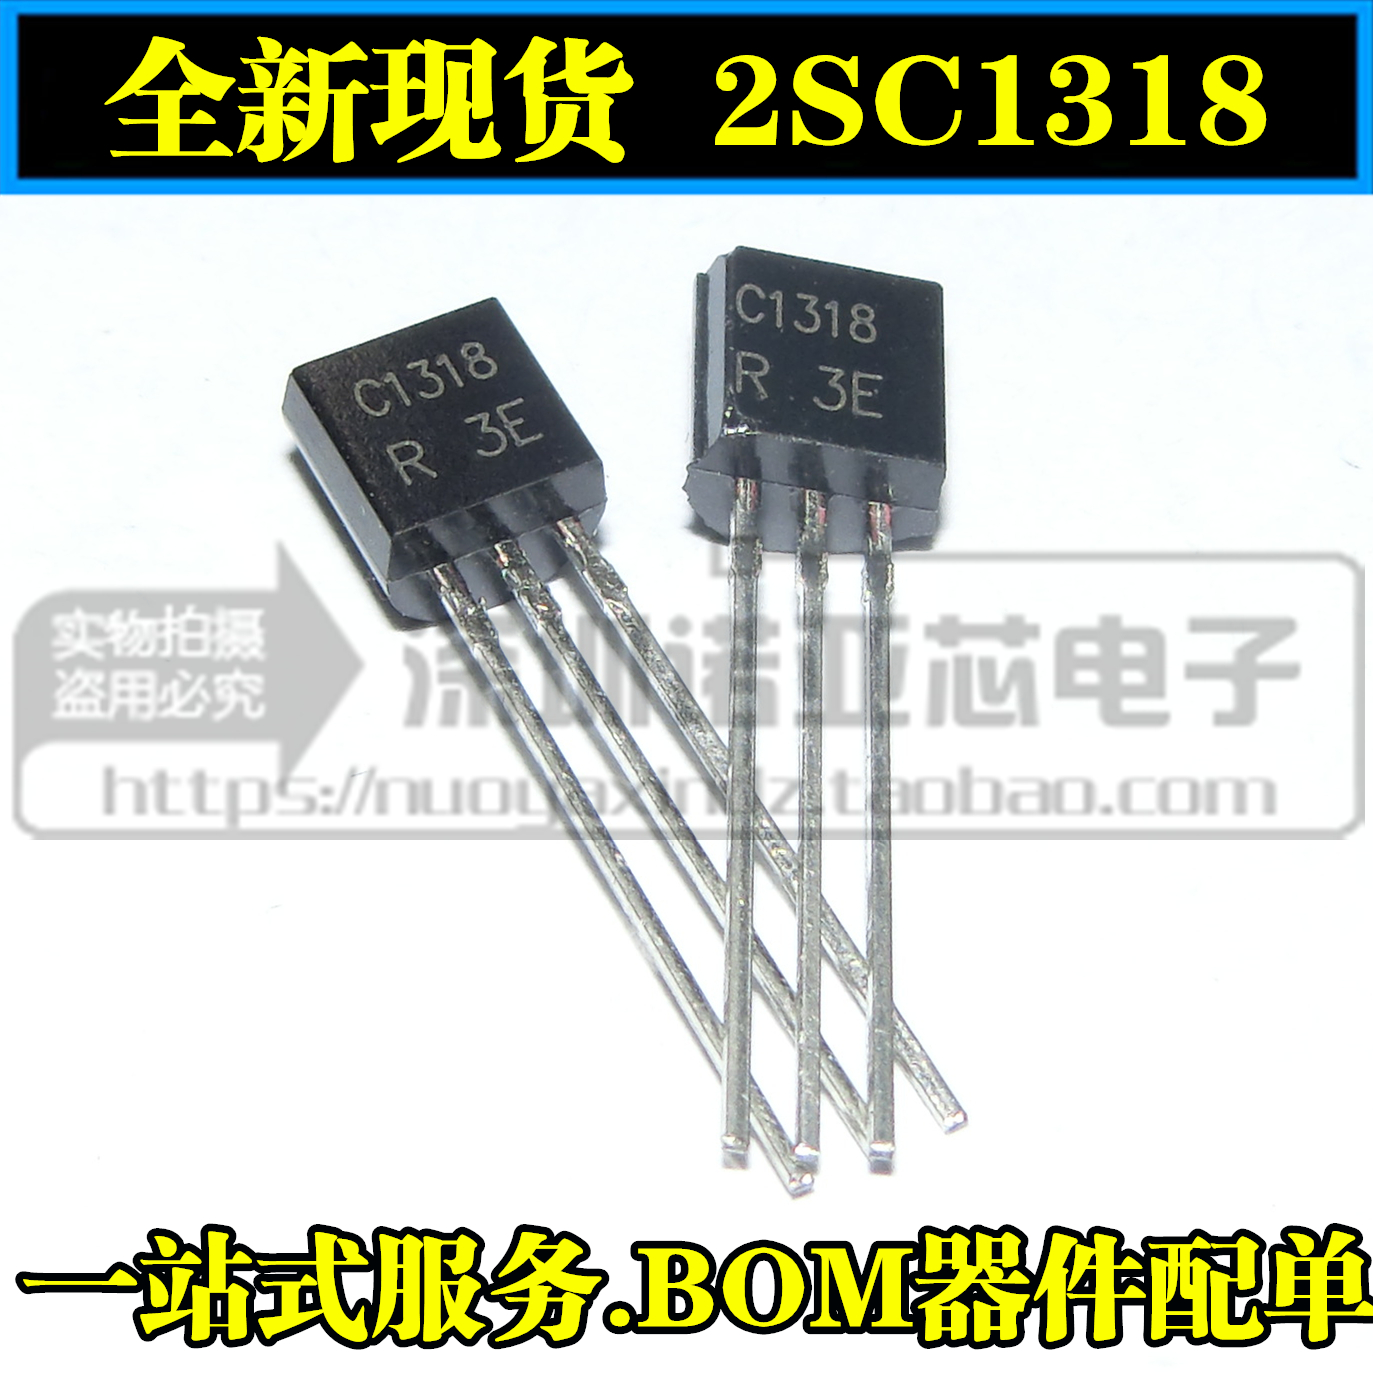 100pcs/lot New 2SC1318 C1318 Transistor TO-92